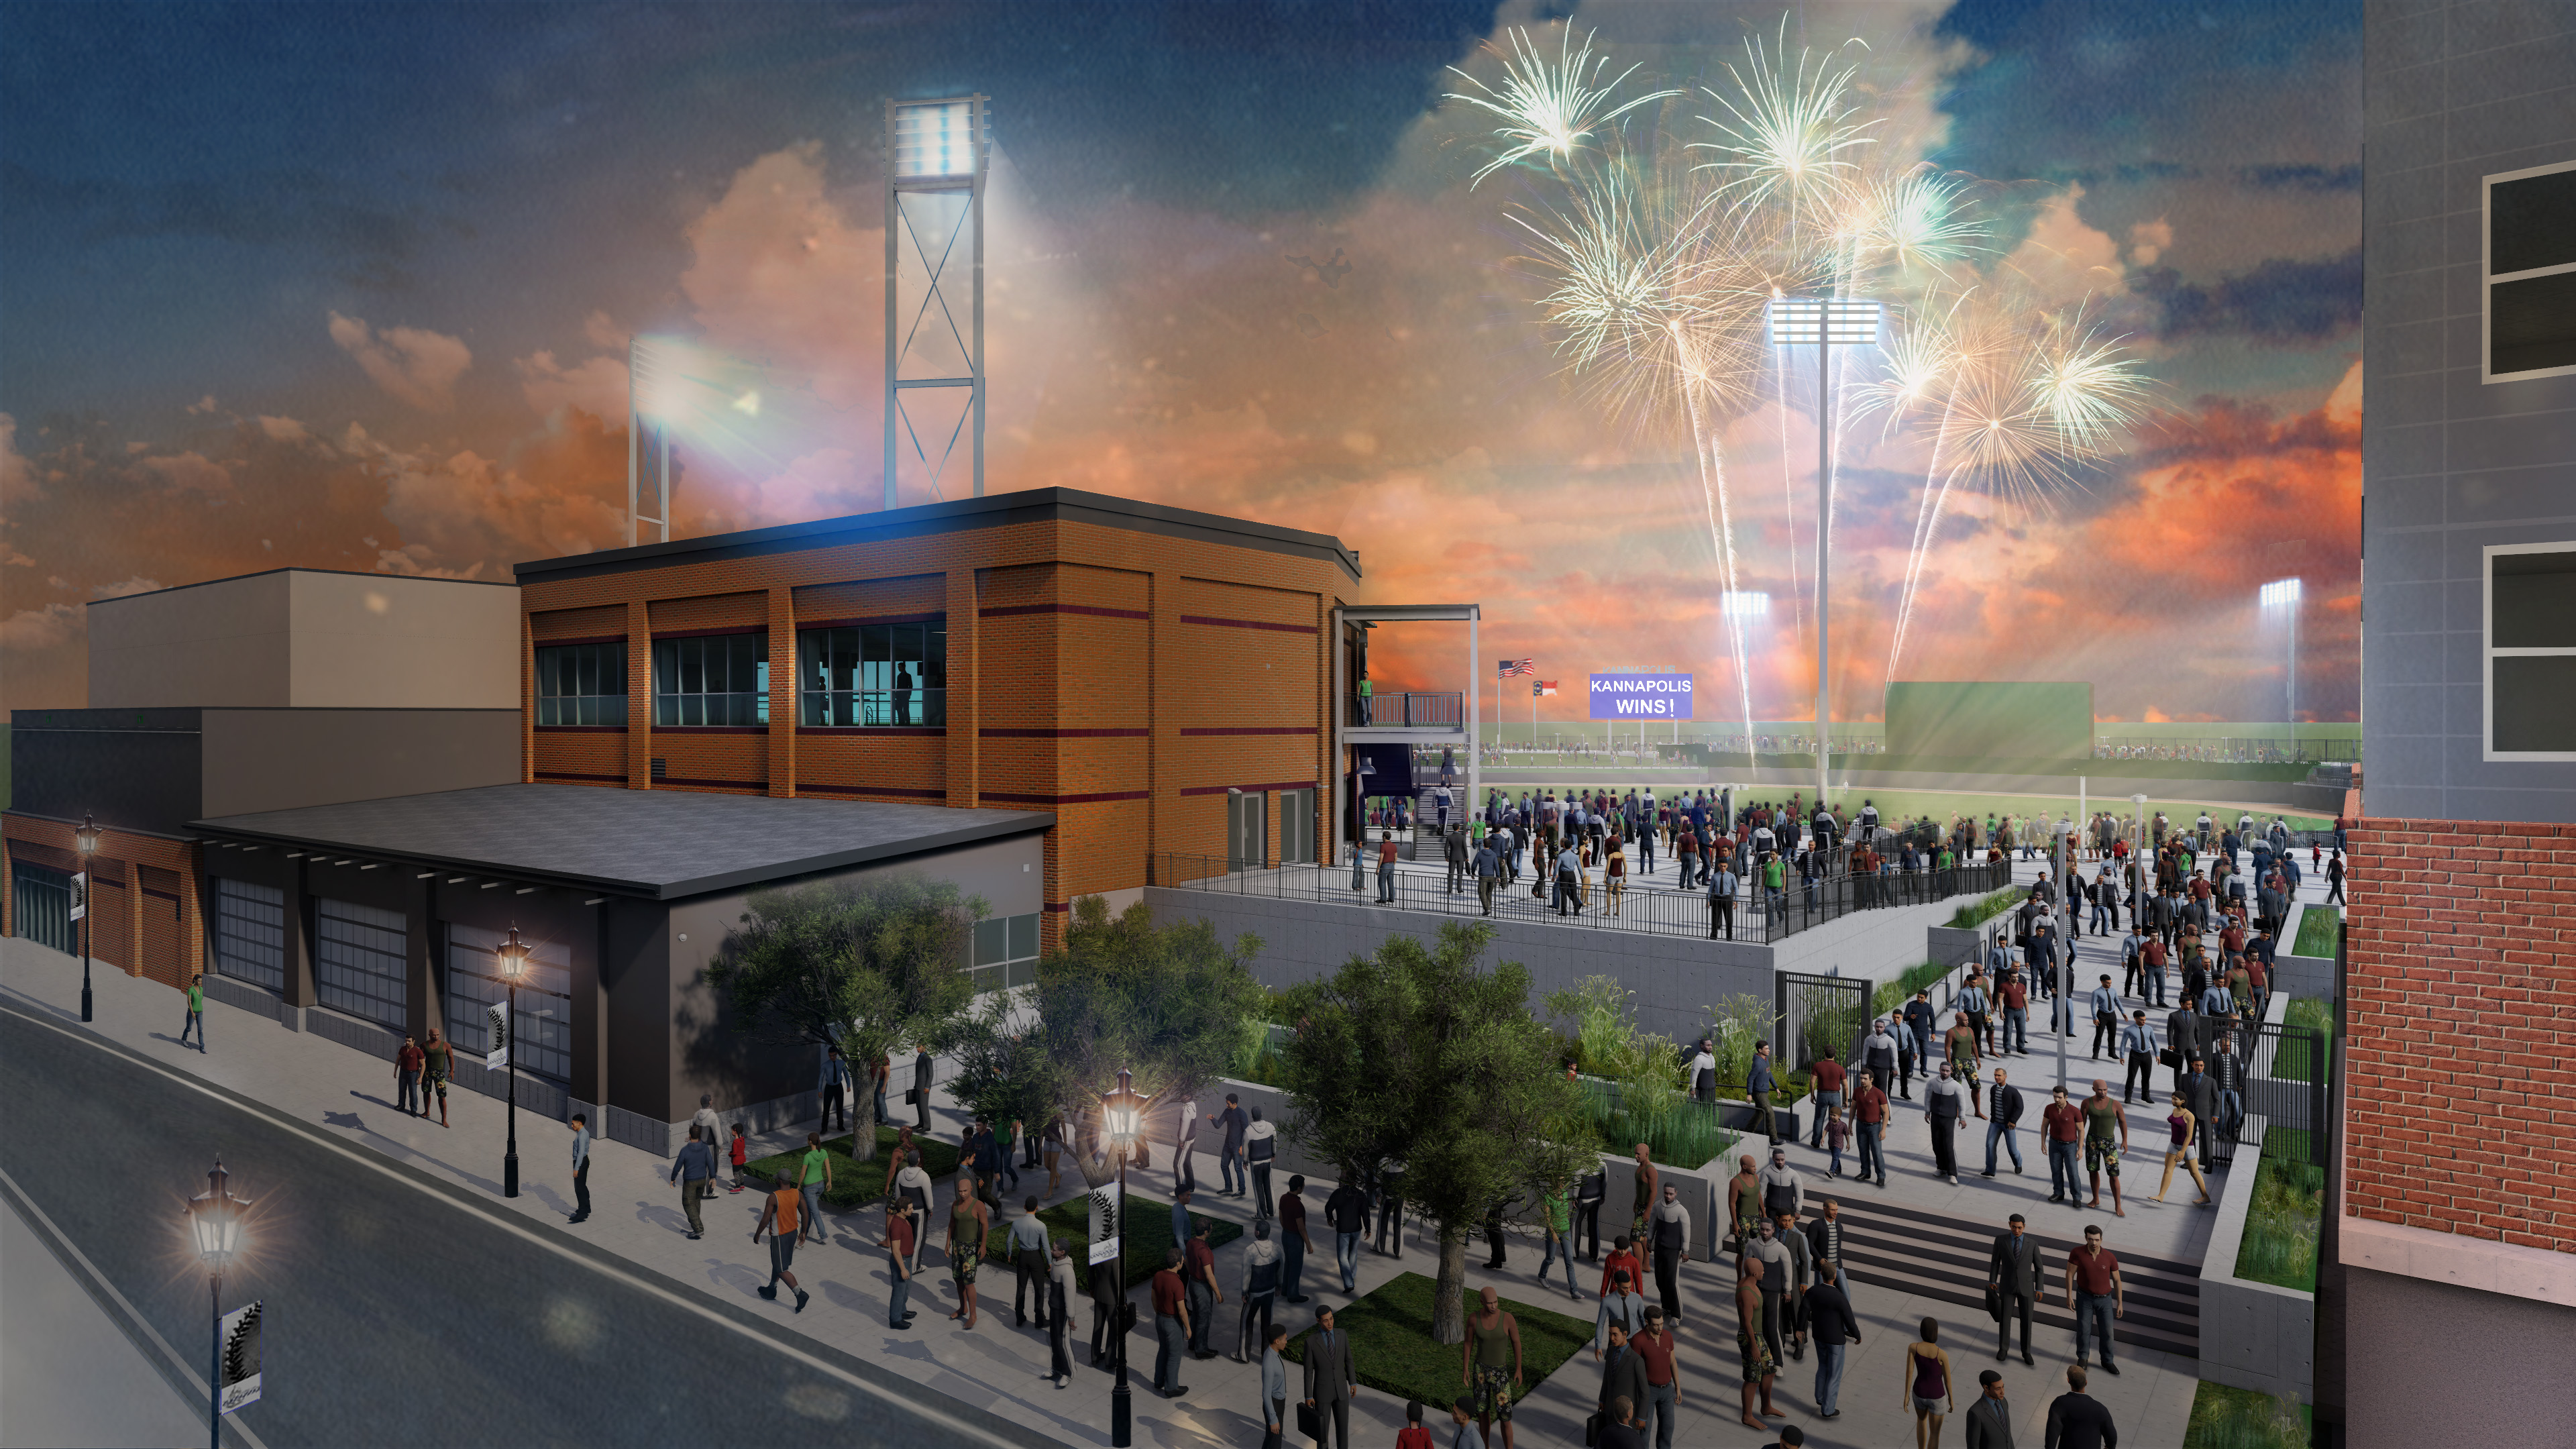 A rendering of the Kannapolis ballpark under construction on the site of a former textile mill. Officials expect the new home for the Kannapolis Cannon Ballers to open in April 2020. Courtesy Kannapolis.